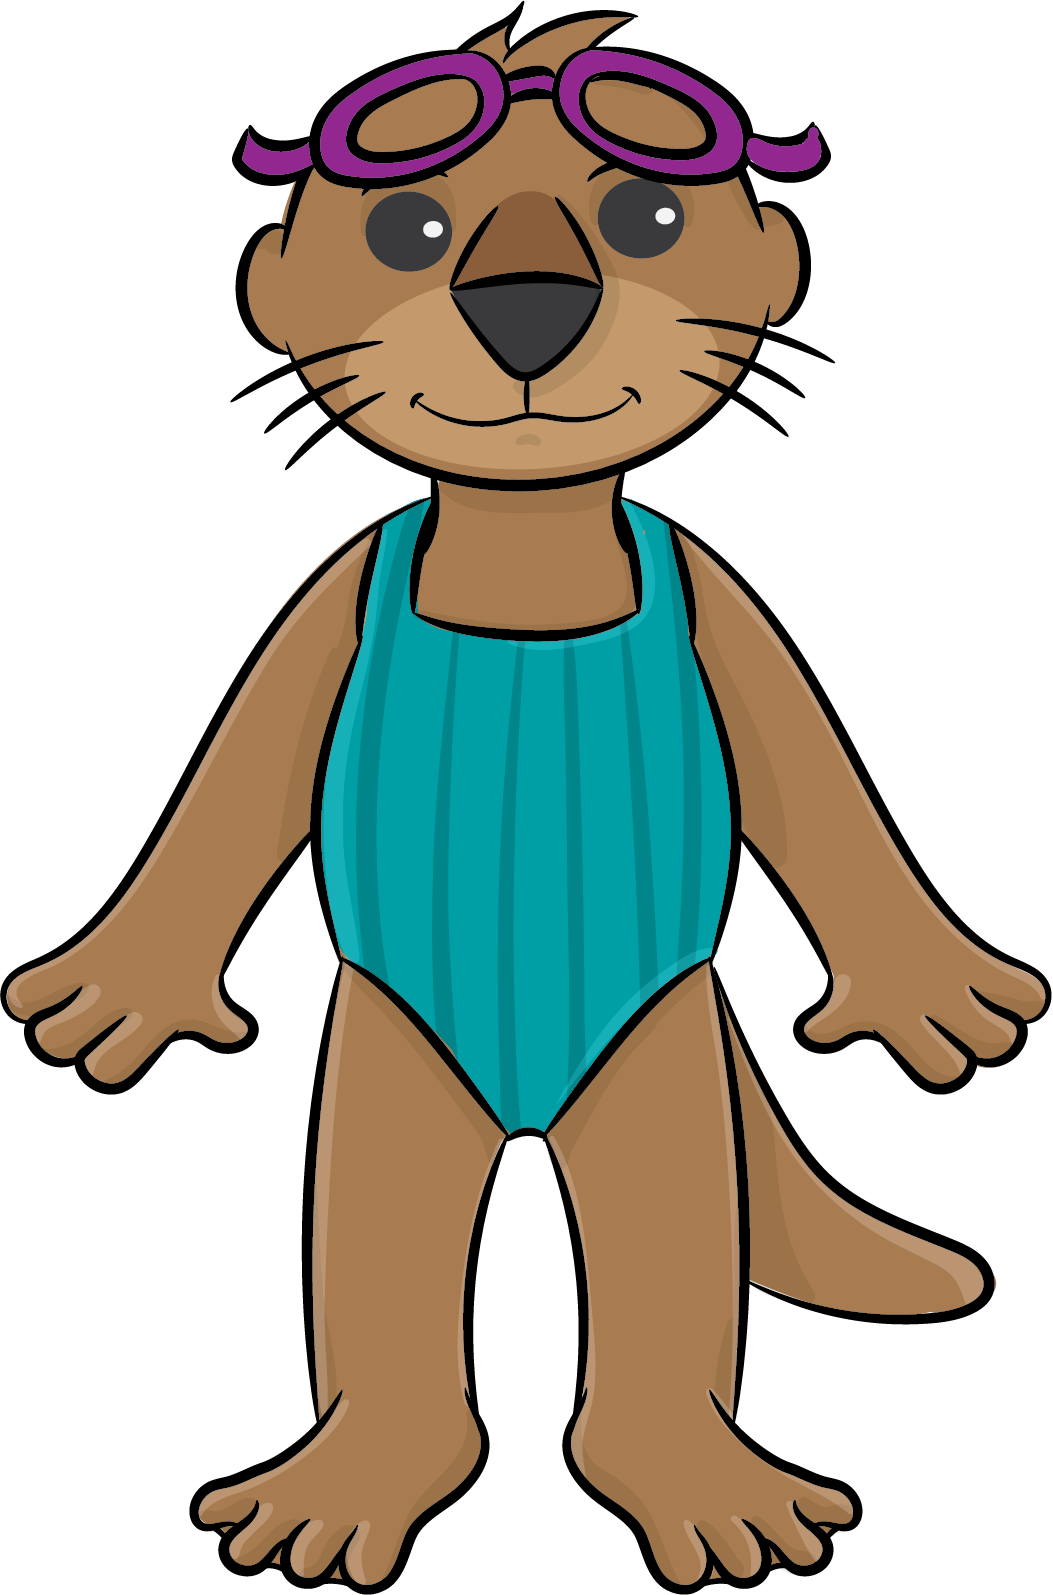 Otter Baby III - Little Otter Swim School